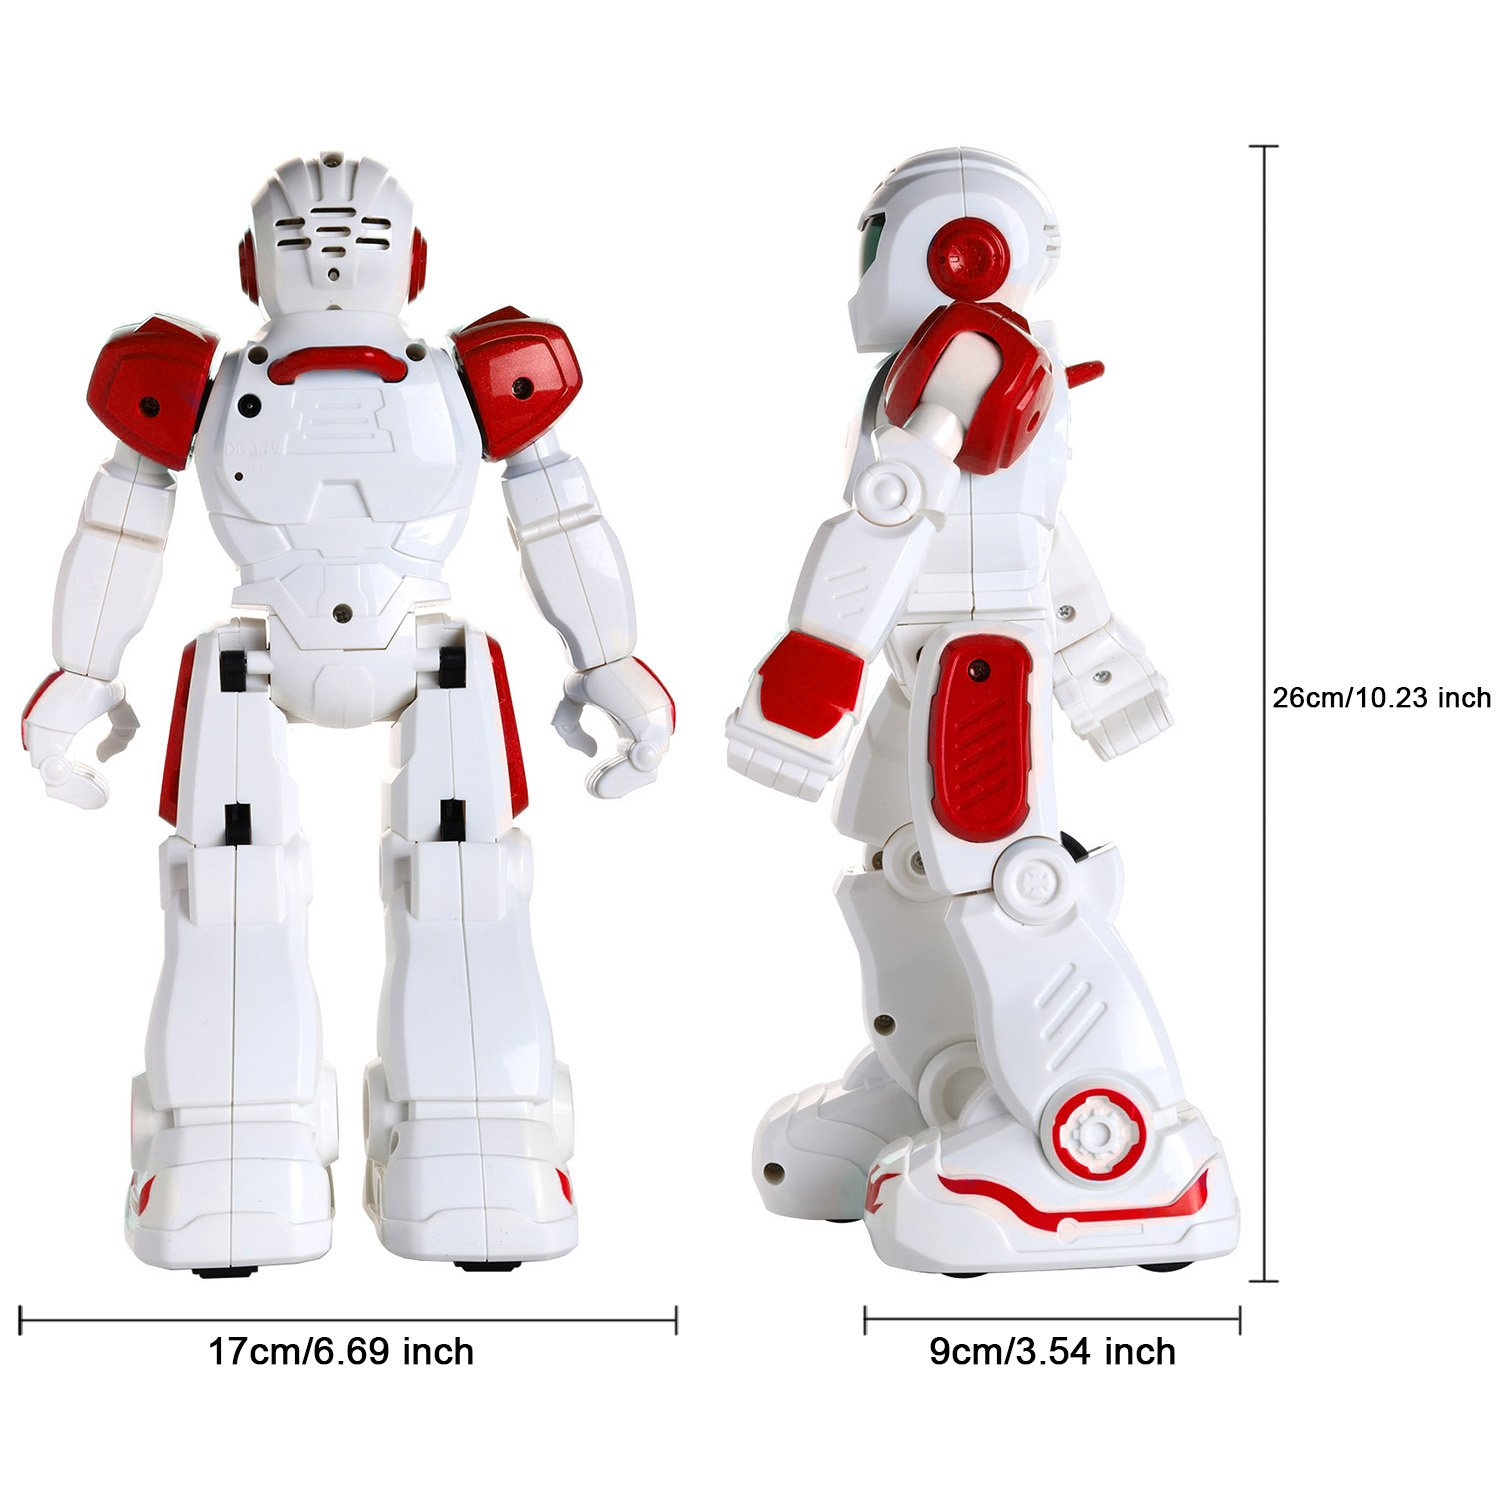 Glantop Remote Control RC Robots Interactive Walking Singing Dancing Smart Programmable Robotics for Kids Boys Girls (Red) by Glantop (Image #6)